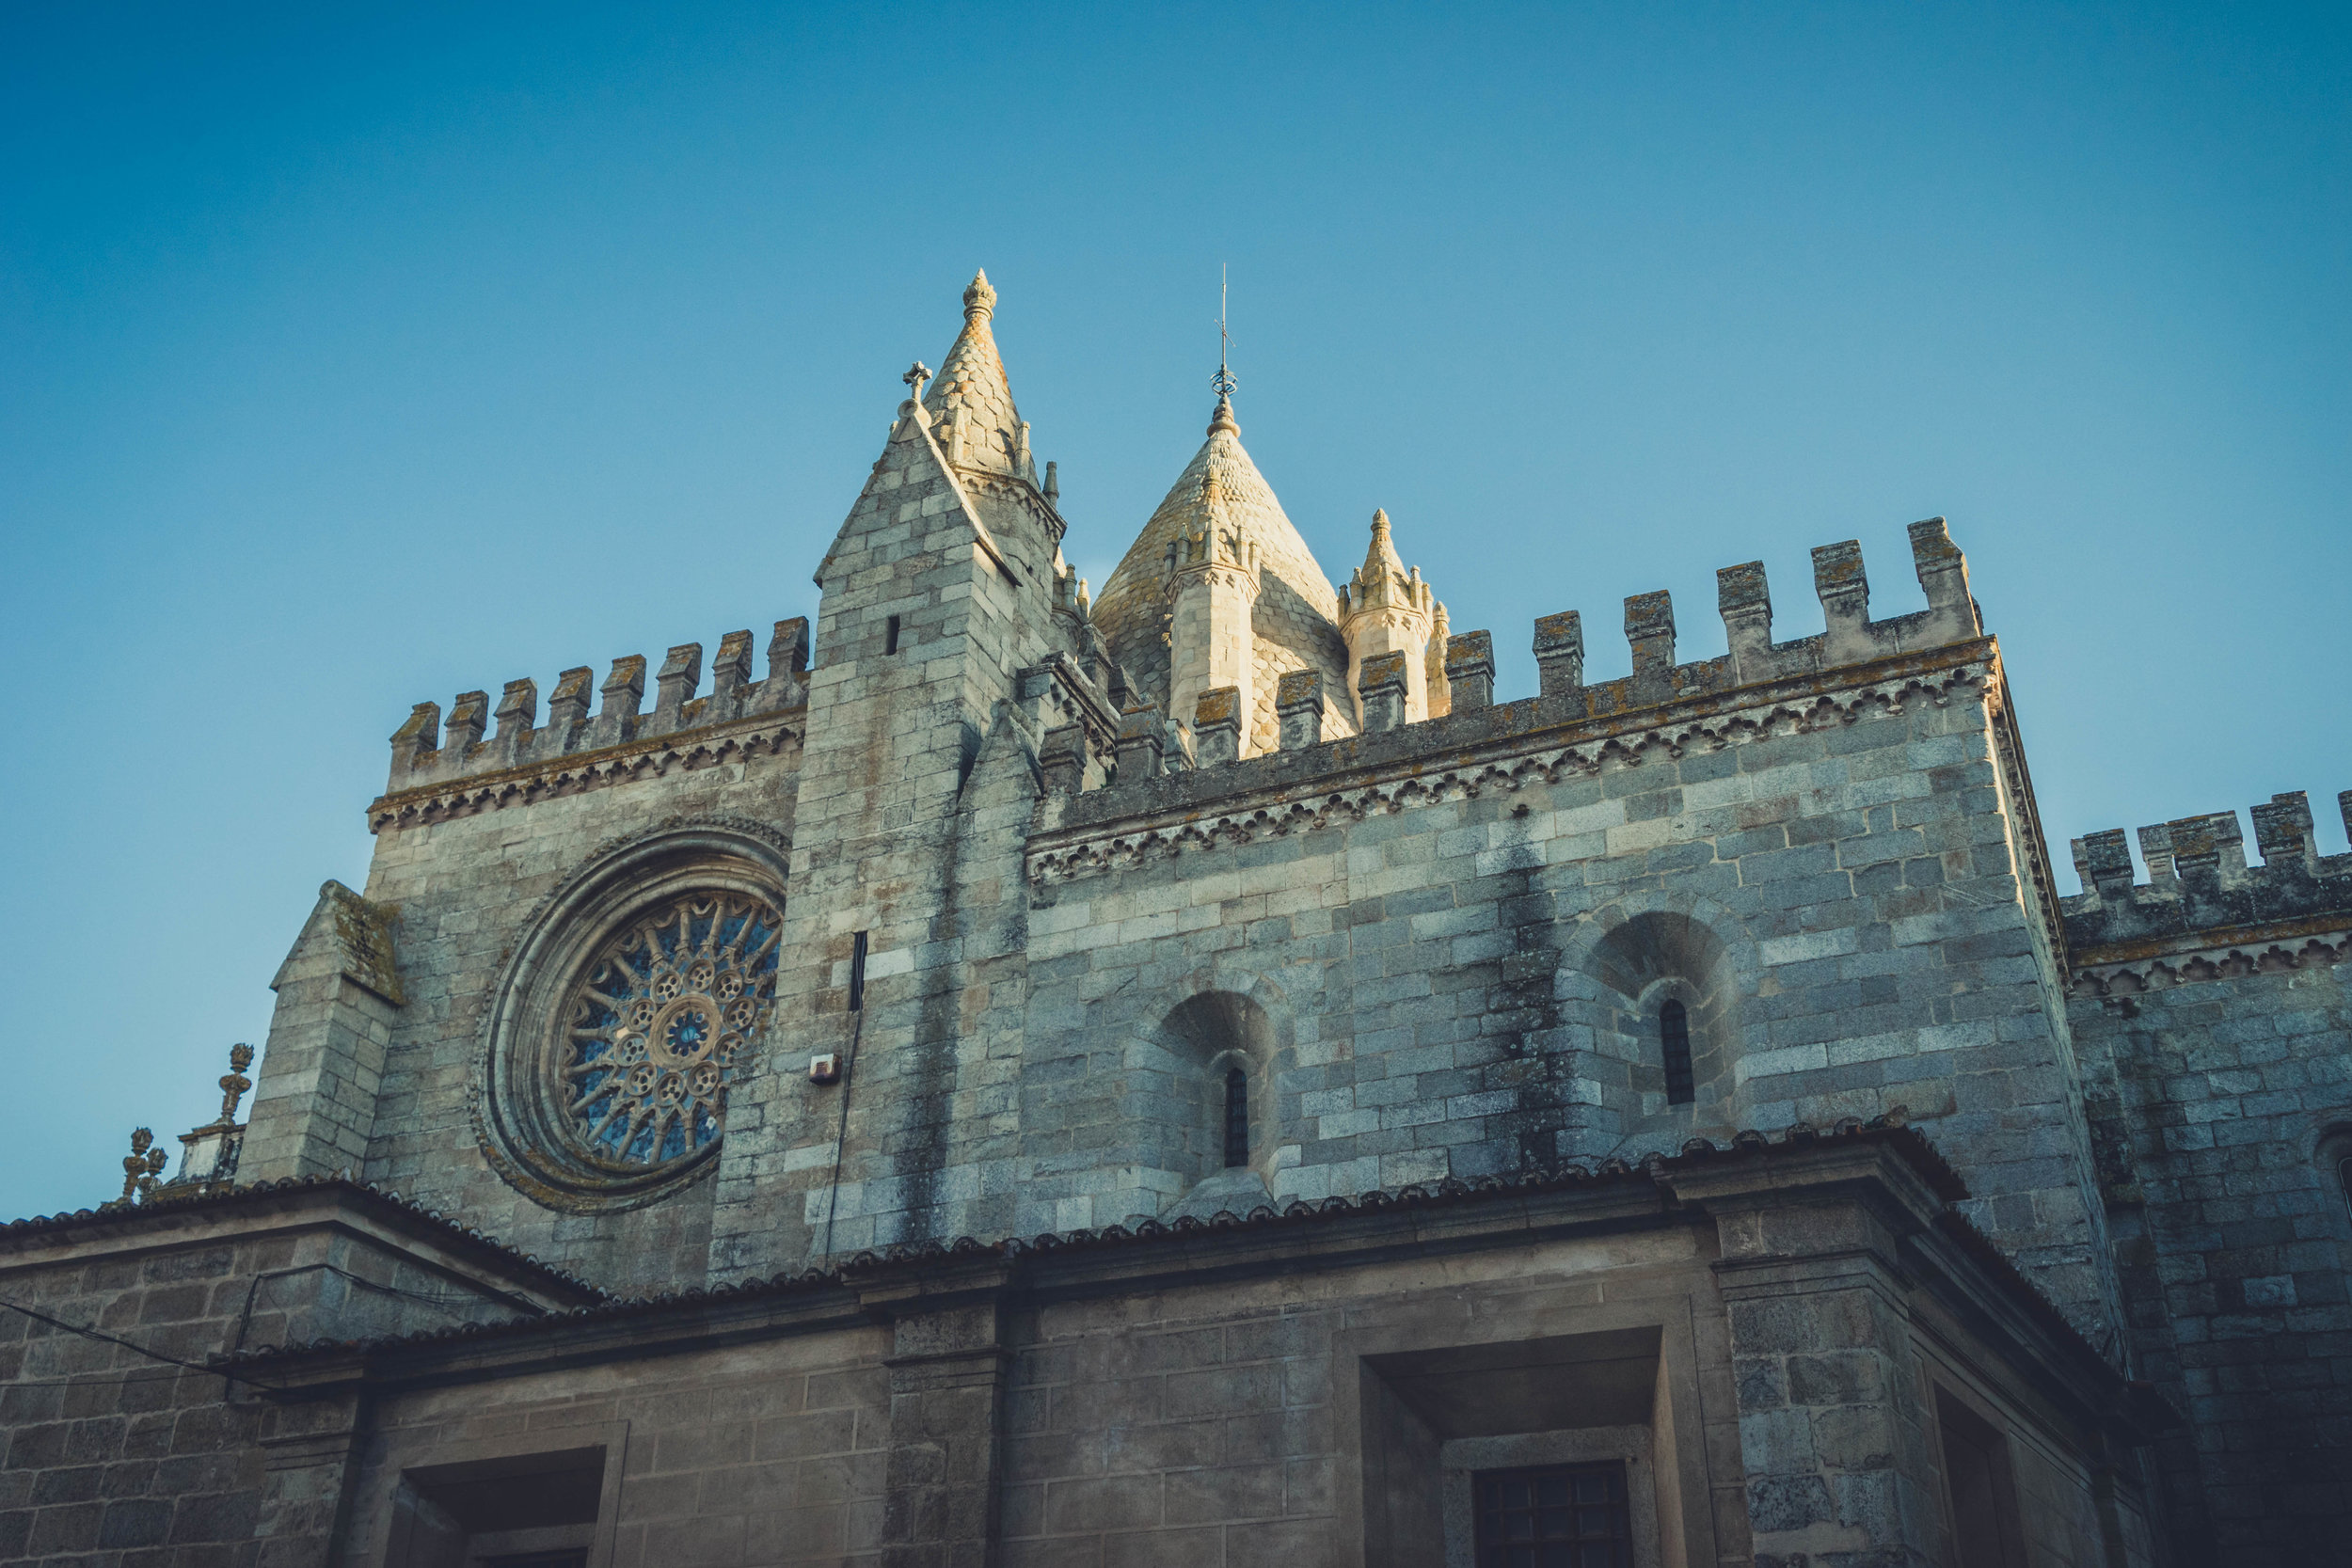 Cathedral of Évora. Evora. Roman Ruins. Portugal. Alentejo. Piliers. Roman city. ancient roman town. Blue sky. travel. adventure. history. historical. wine. architecture.jpg